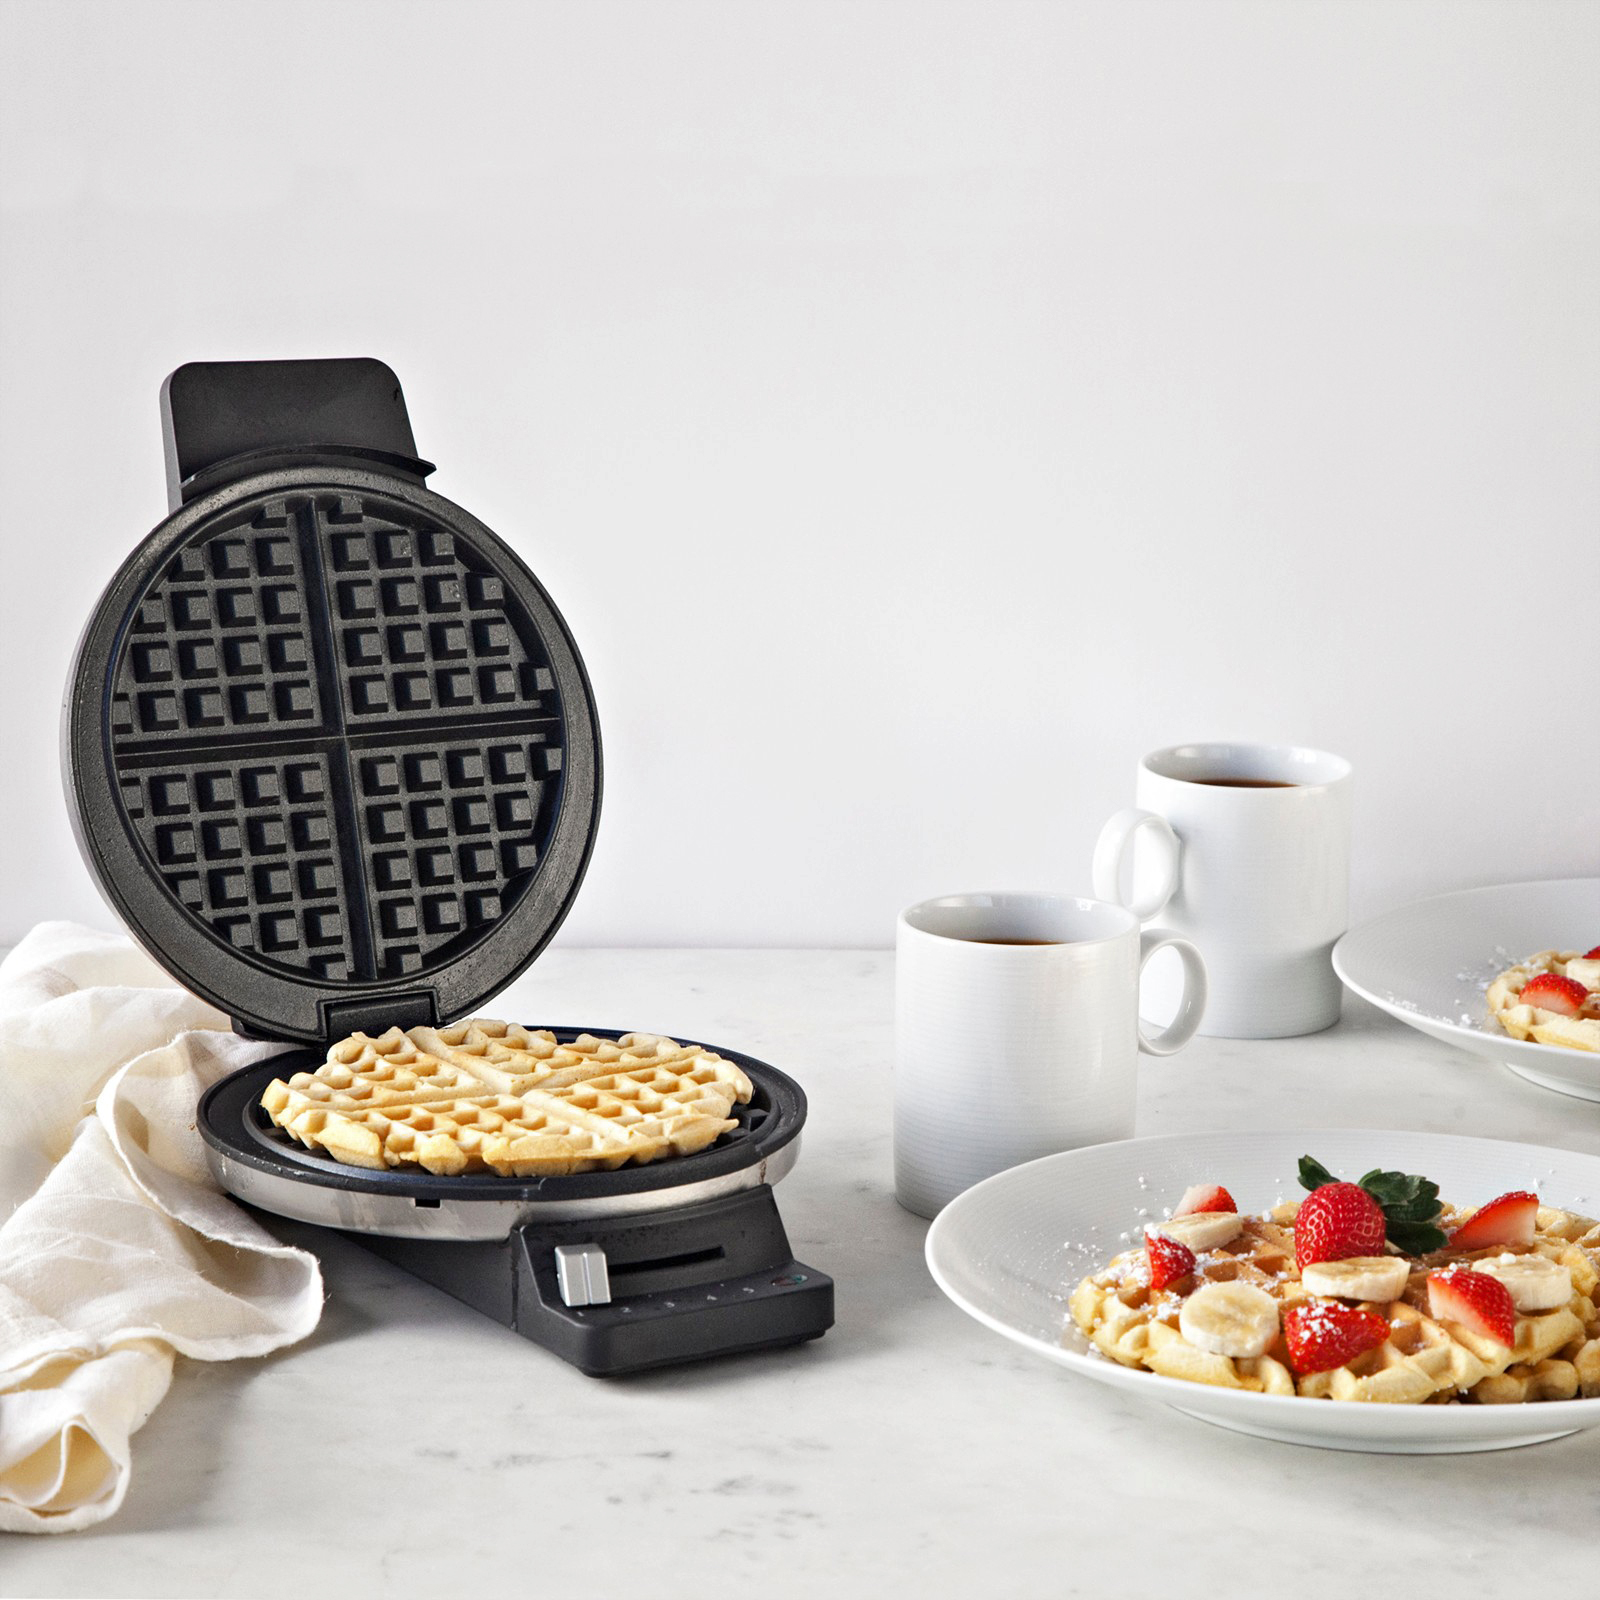 morning registry items cuisinart round classic waffle maker